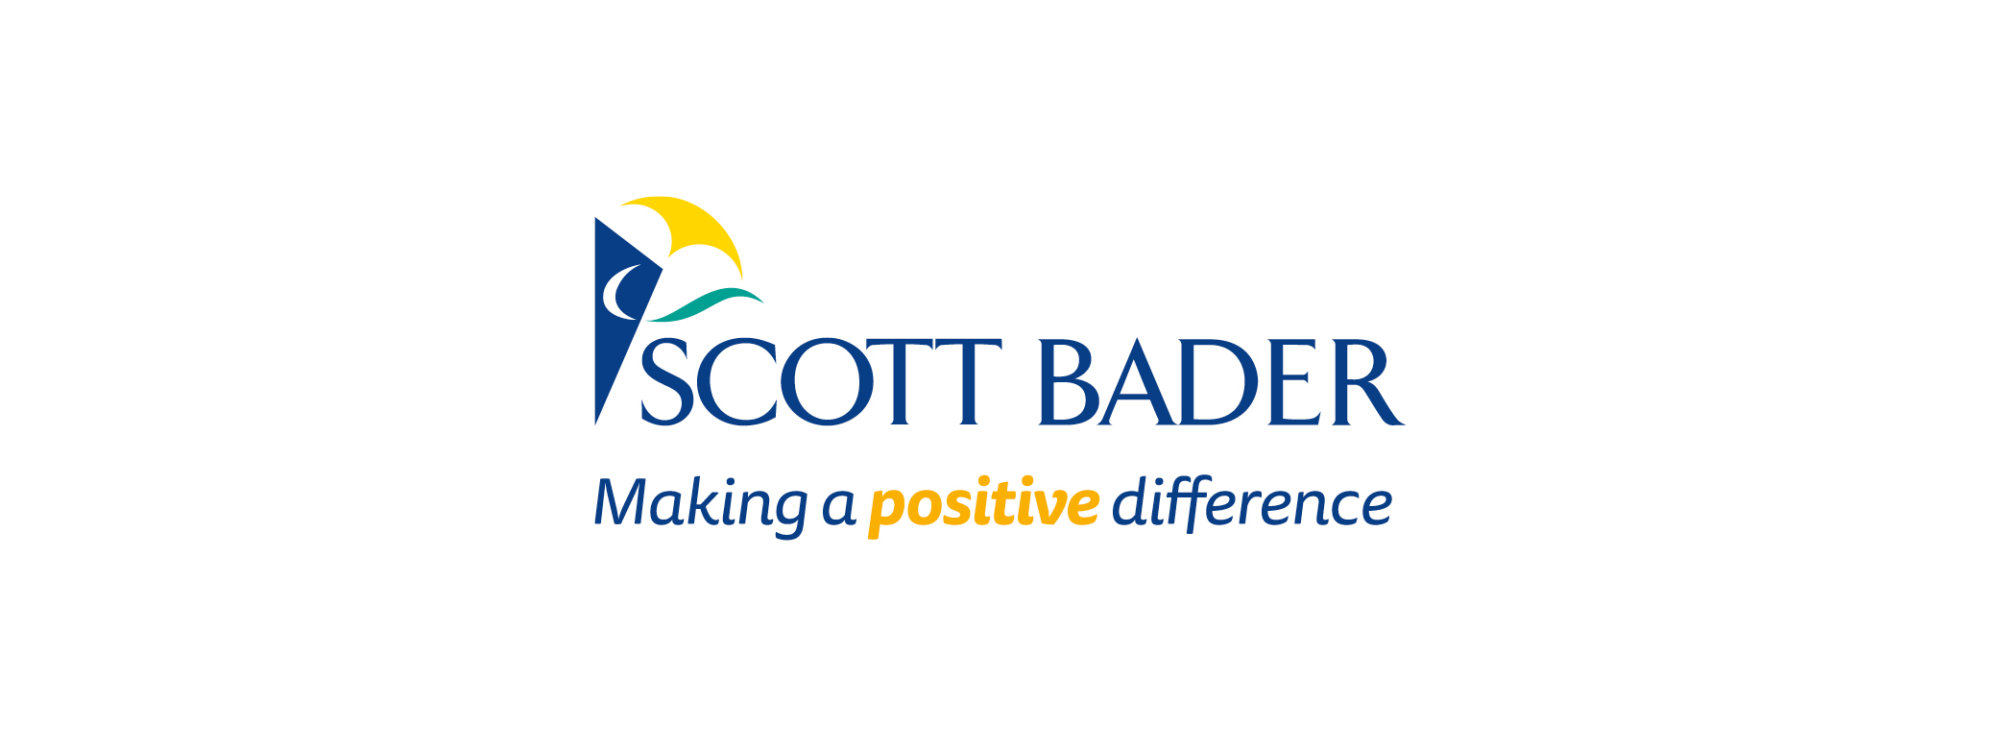 Scott Bader appointed sole distributor of United Initiators' BAYCAT<sup>®</sup>